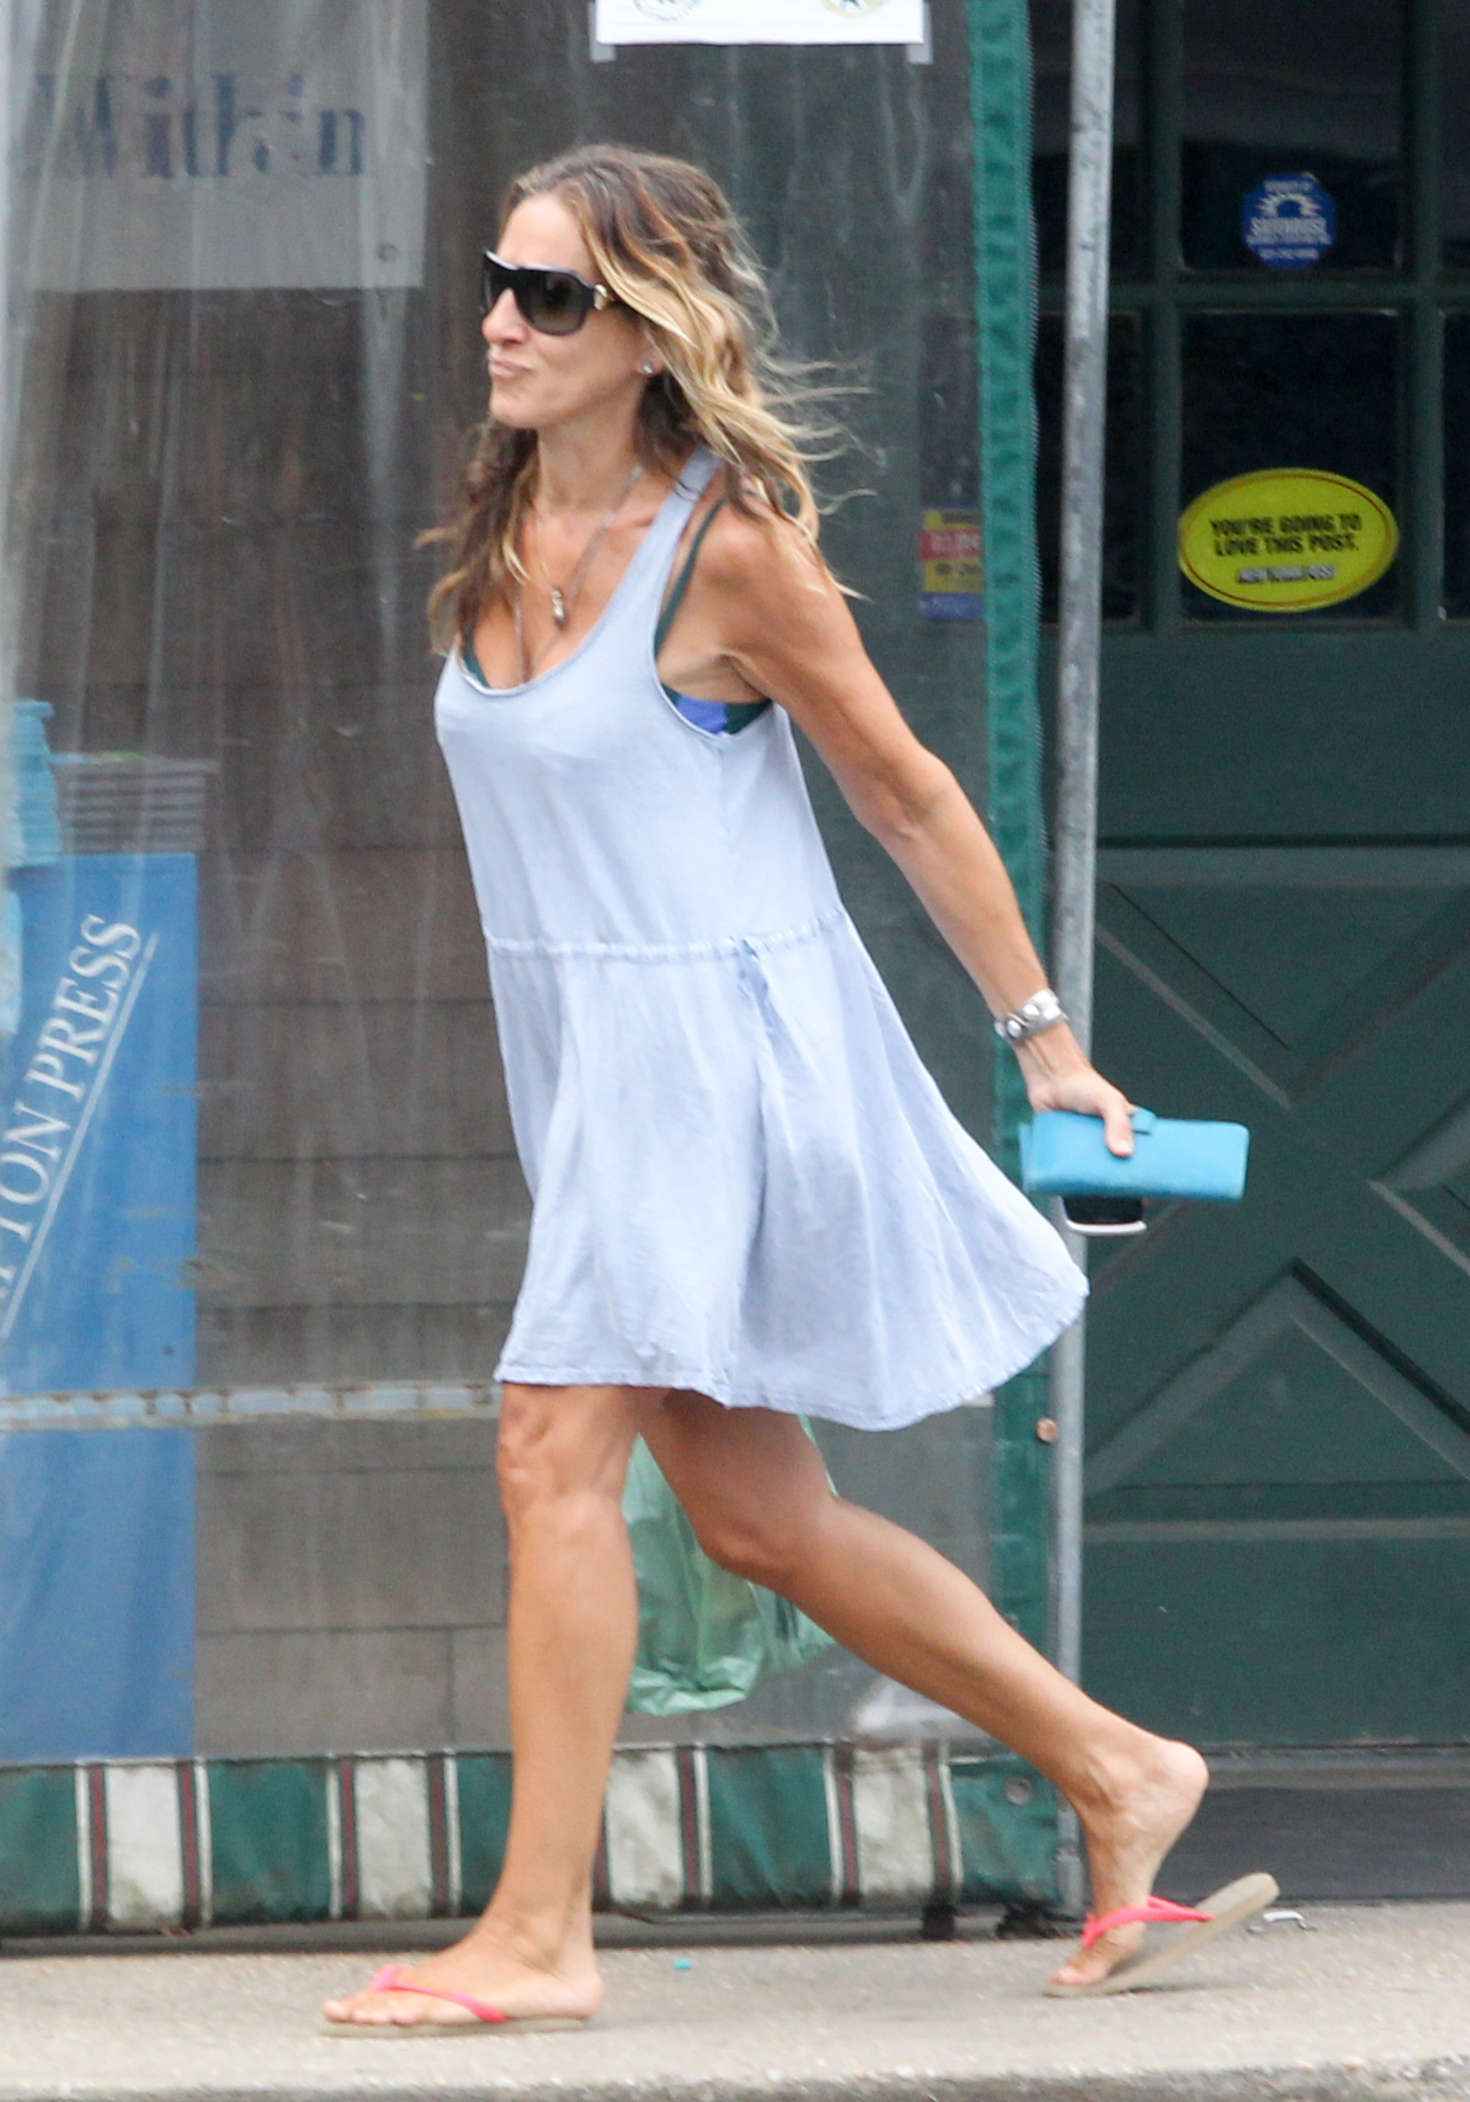 Sarah Jessica Parker in Mini Dress out in NY